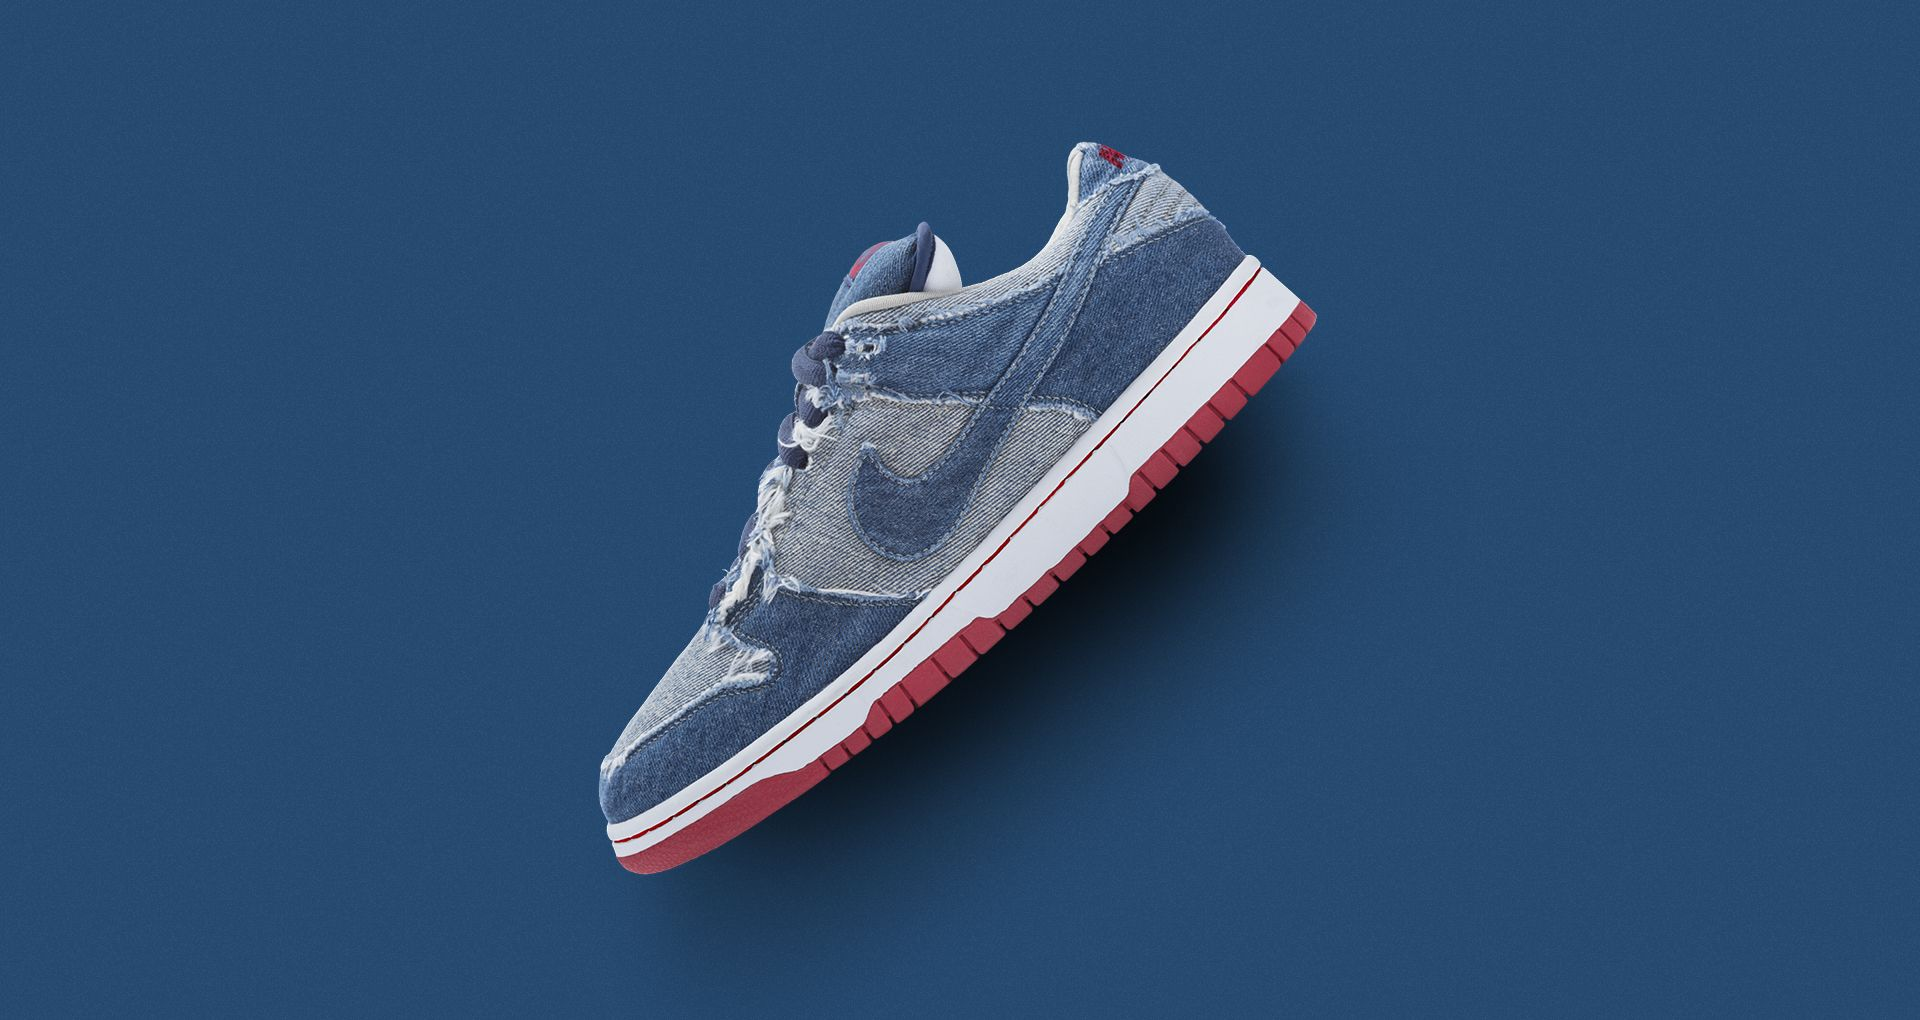 b6437945524b In celebration of the 15-year anniversary of the Nike SB Dunk